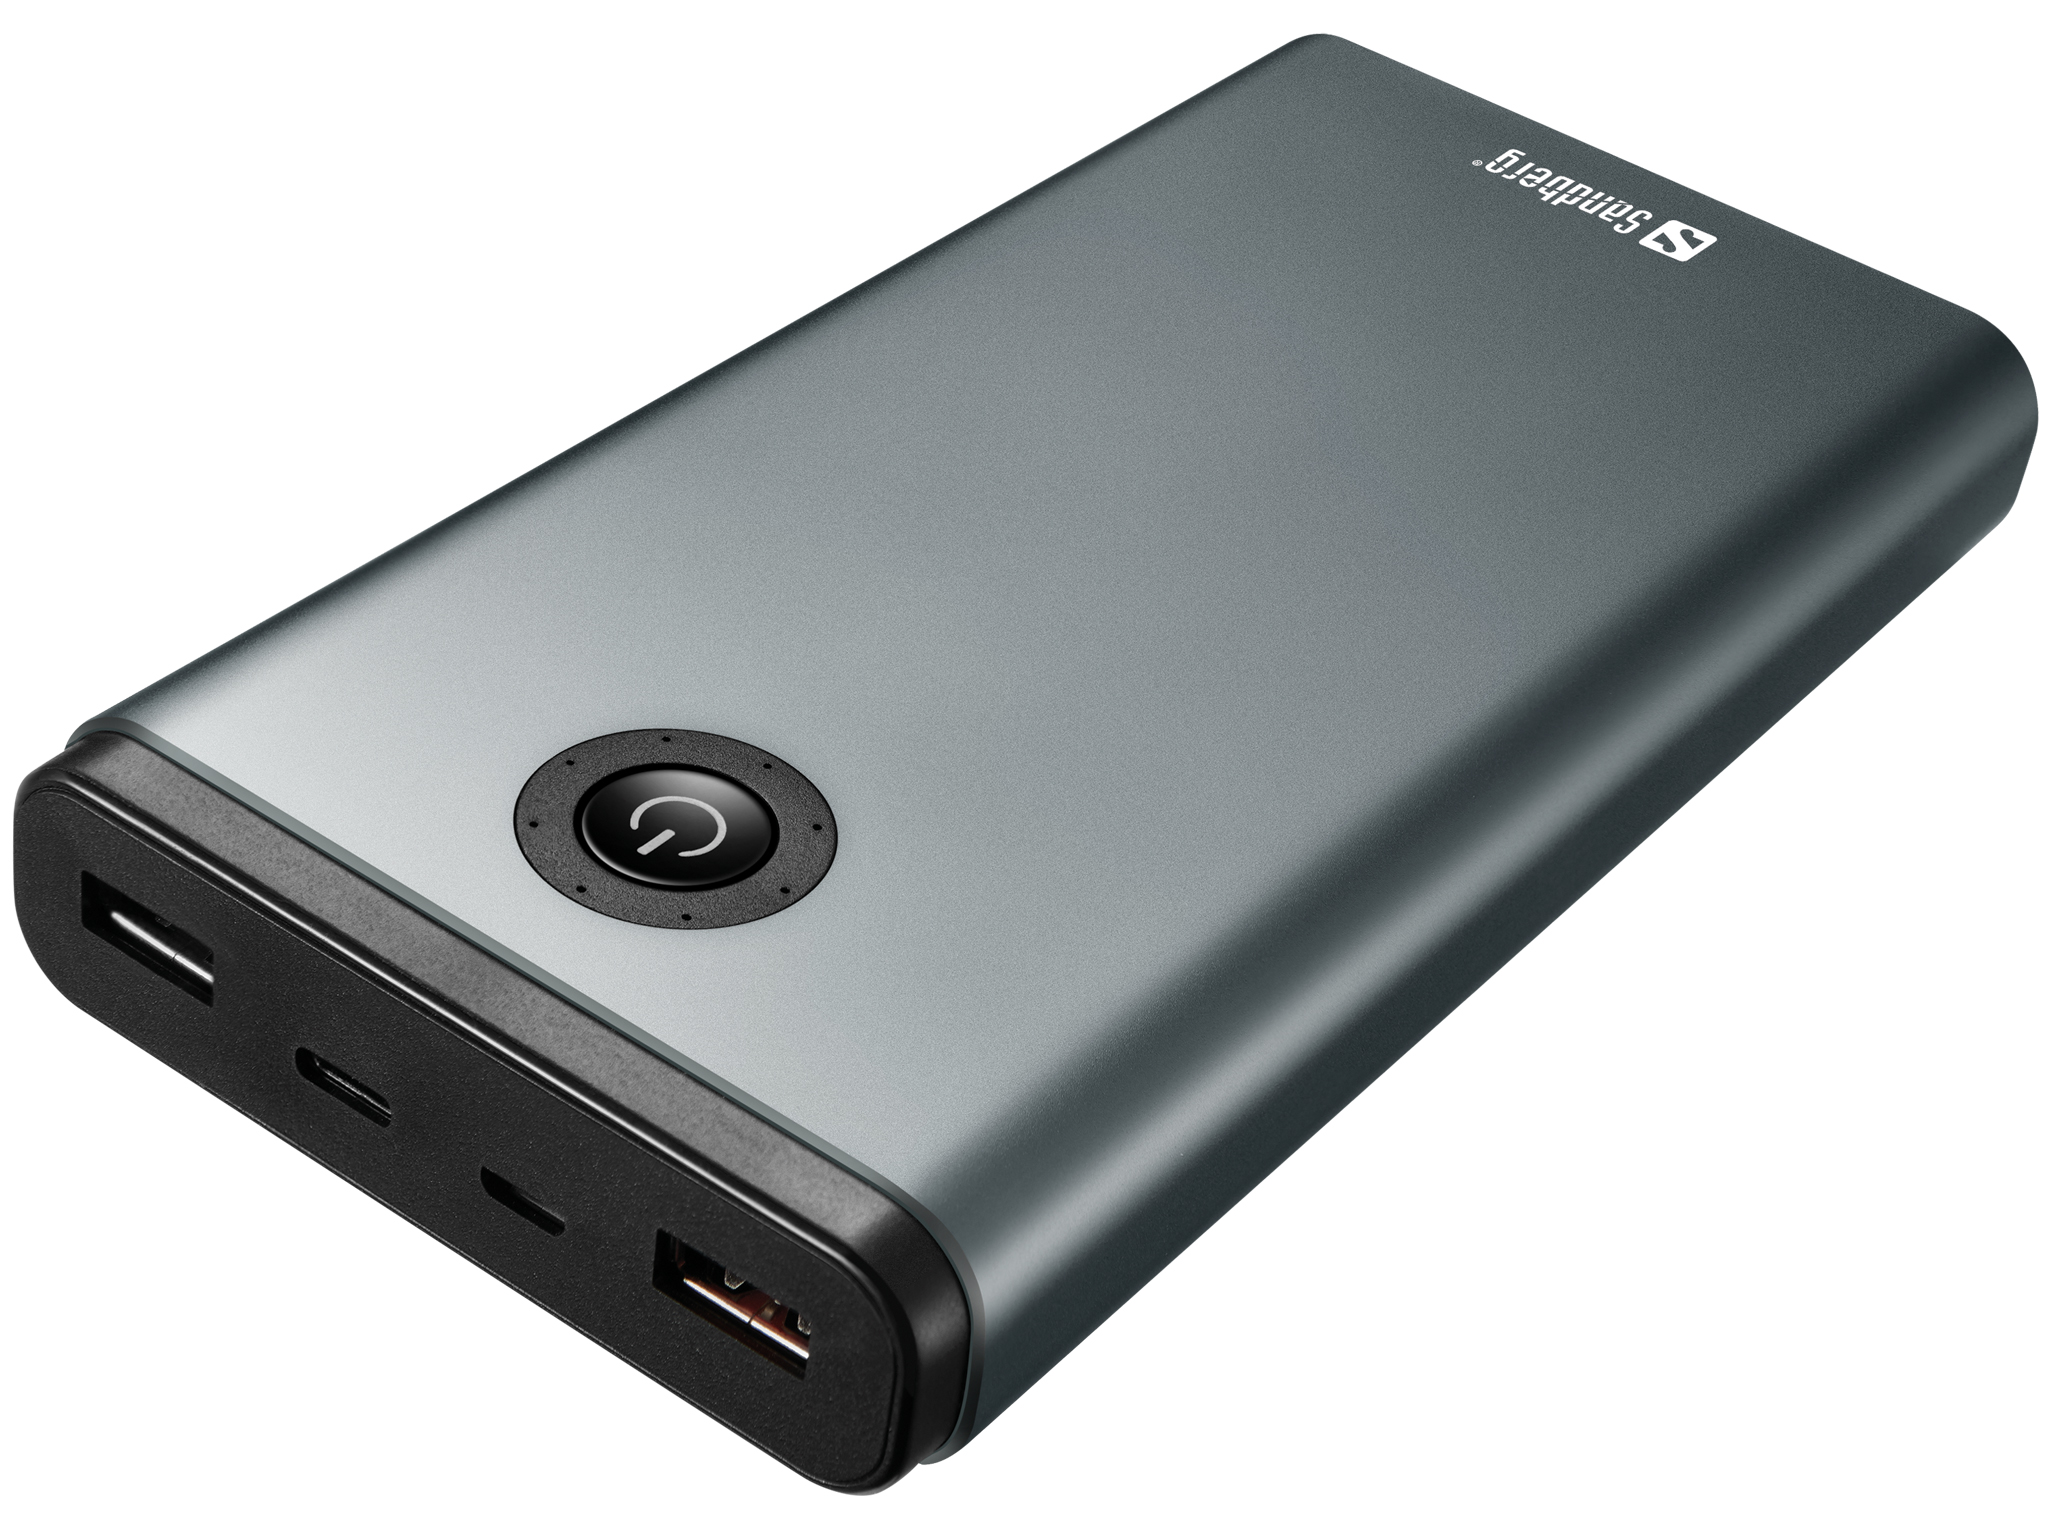 Powerbank USB-C PD 65W 20800